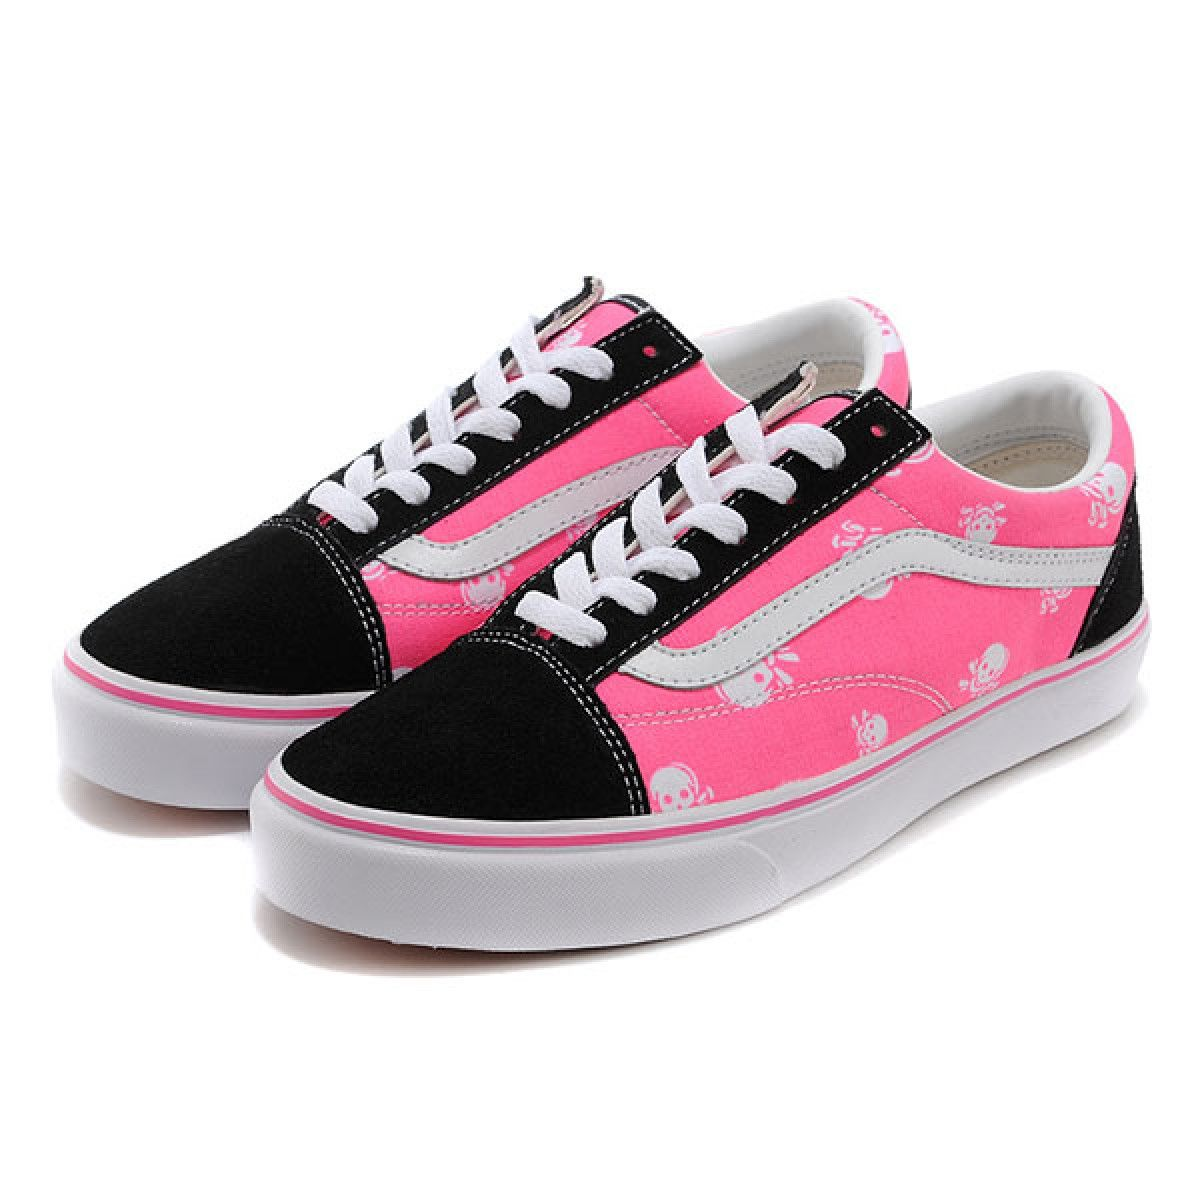 694443066710 Vans Shoes Black Pink Skulls Old Skool Shoes Womens Classic Canvas ...